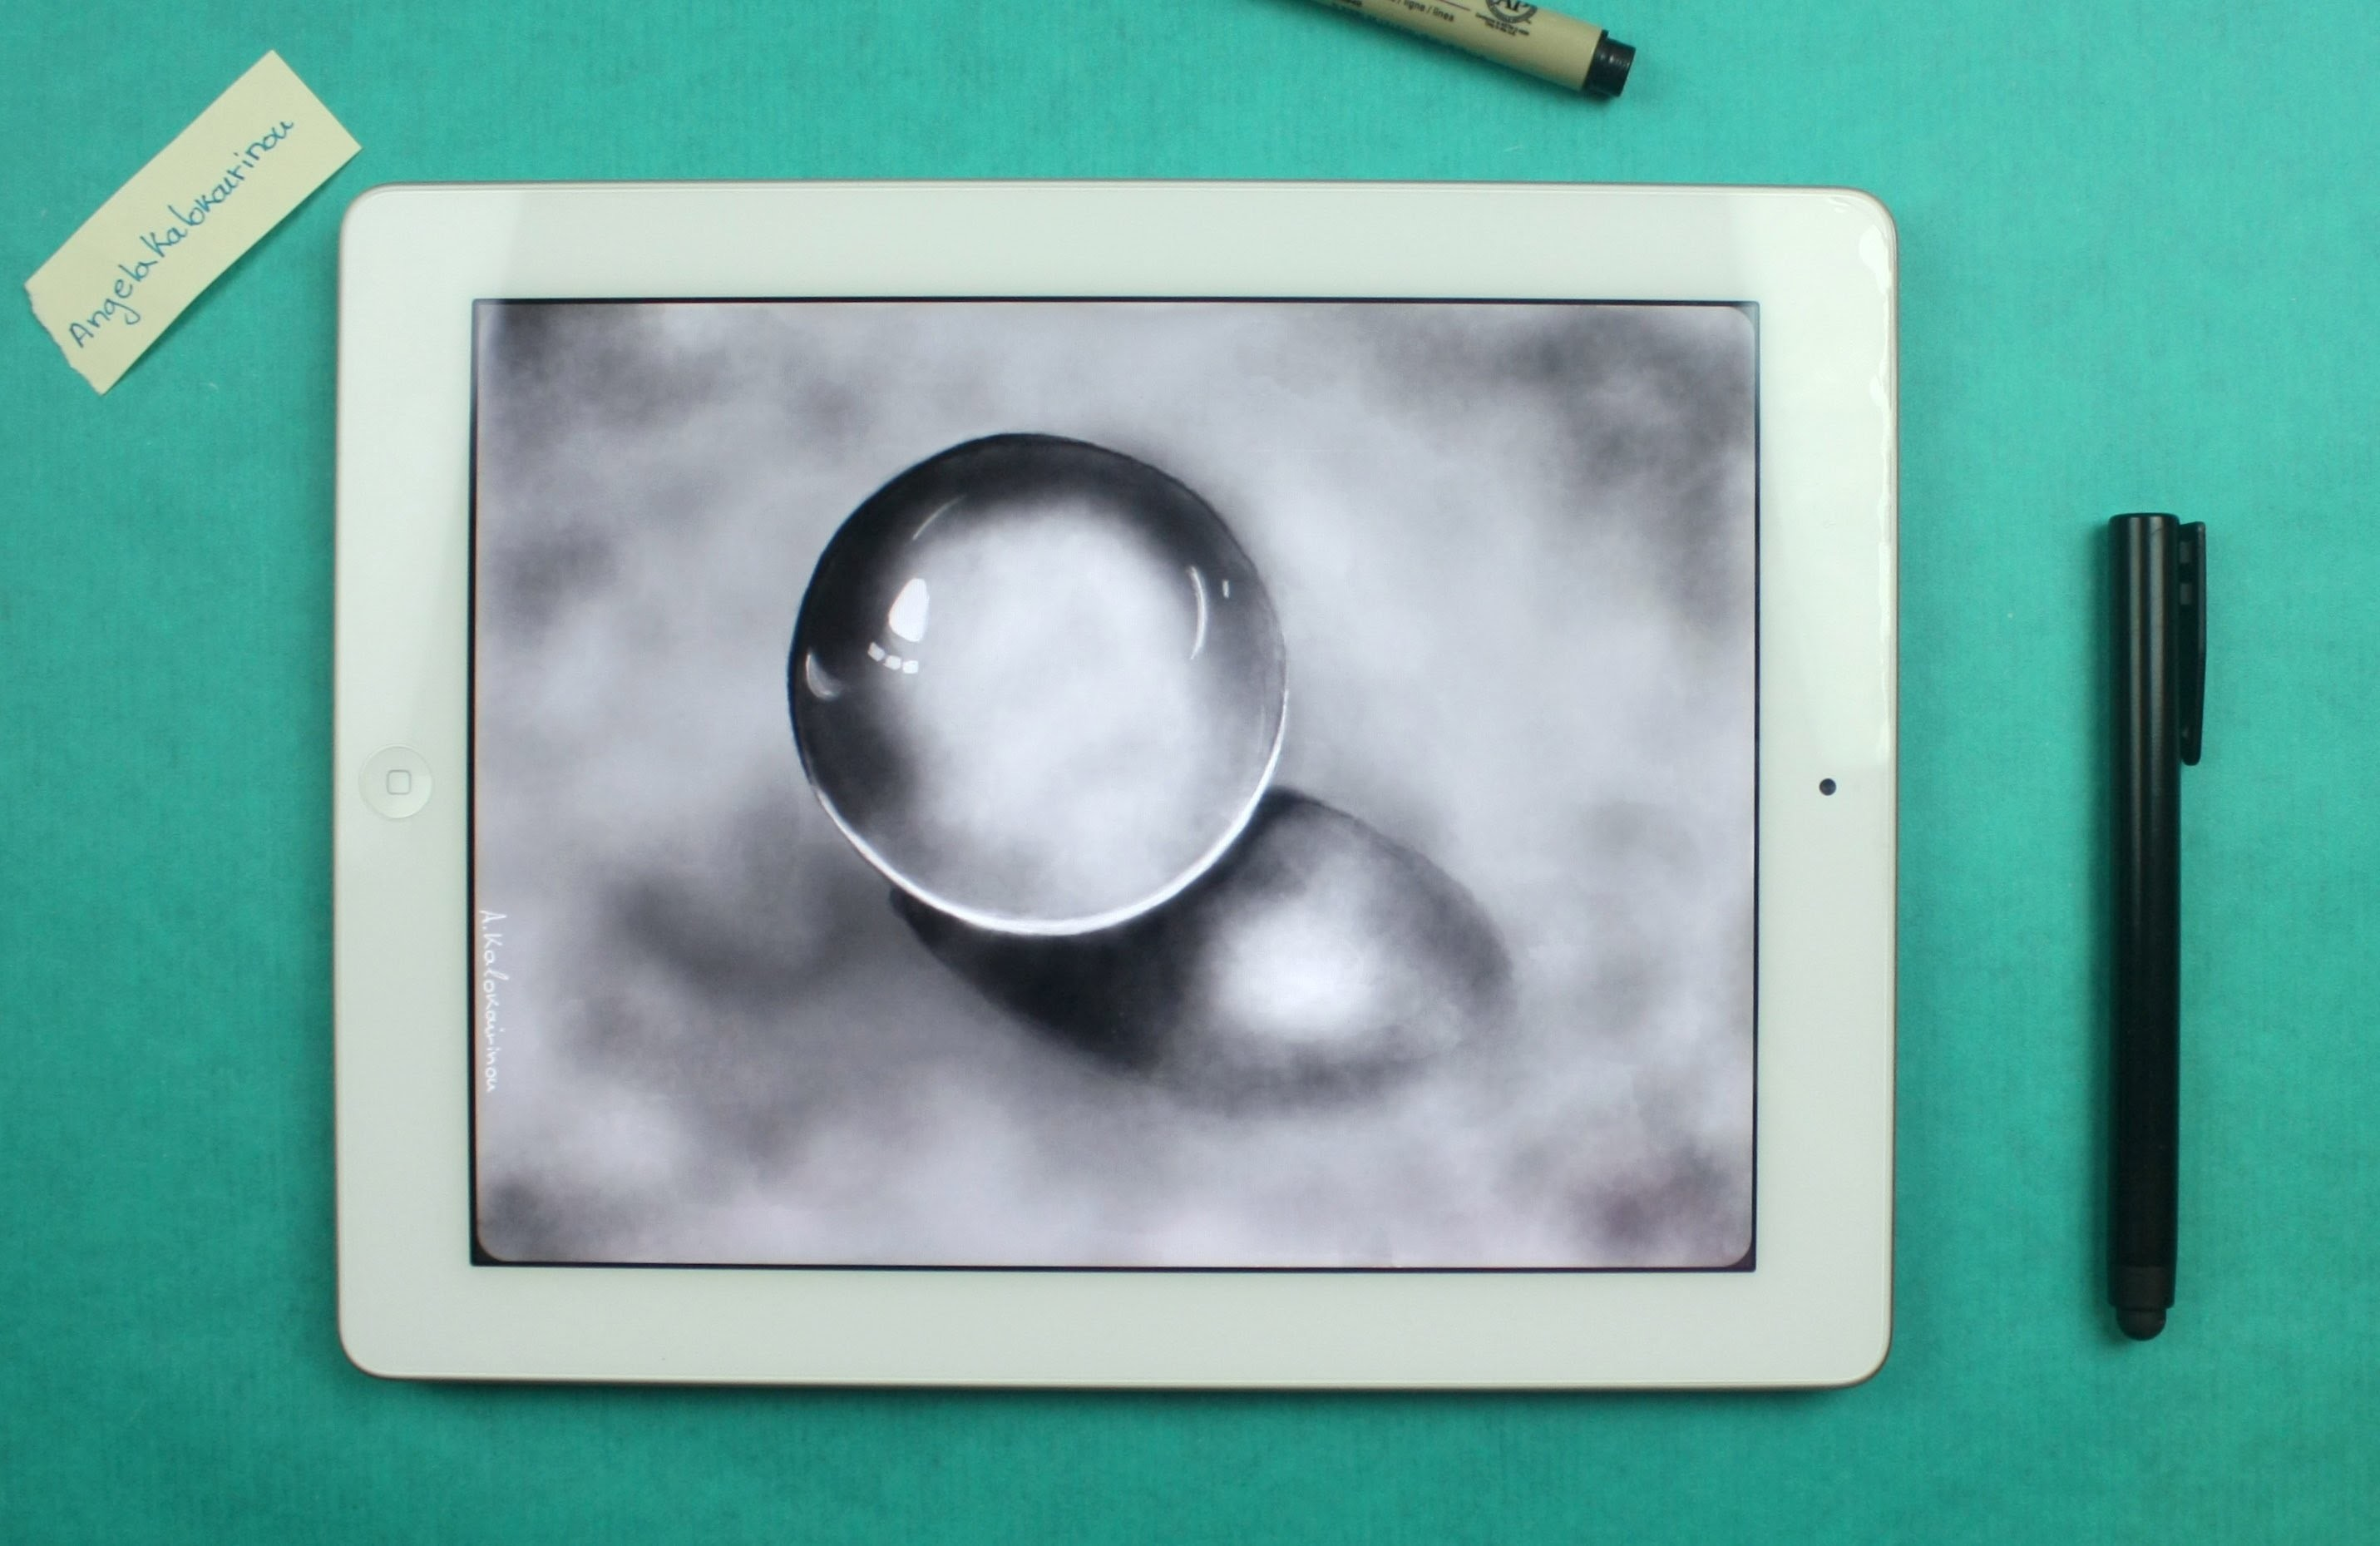 How to Draw a Crystal Ball on ipad  With: Paper by fiftythree